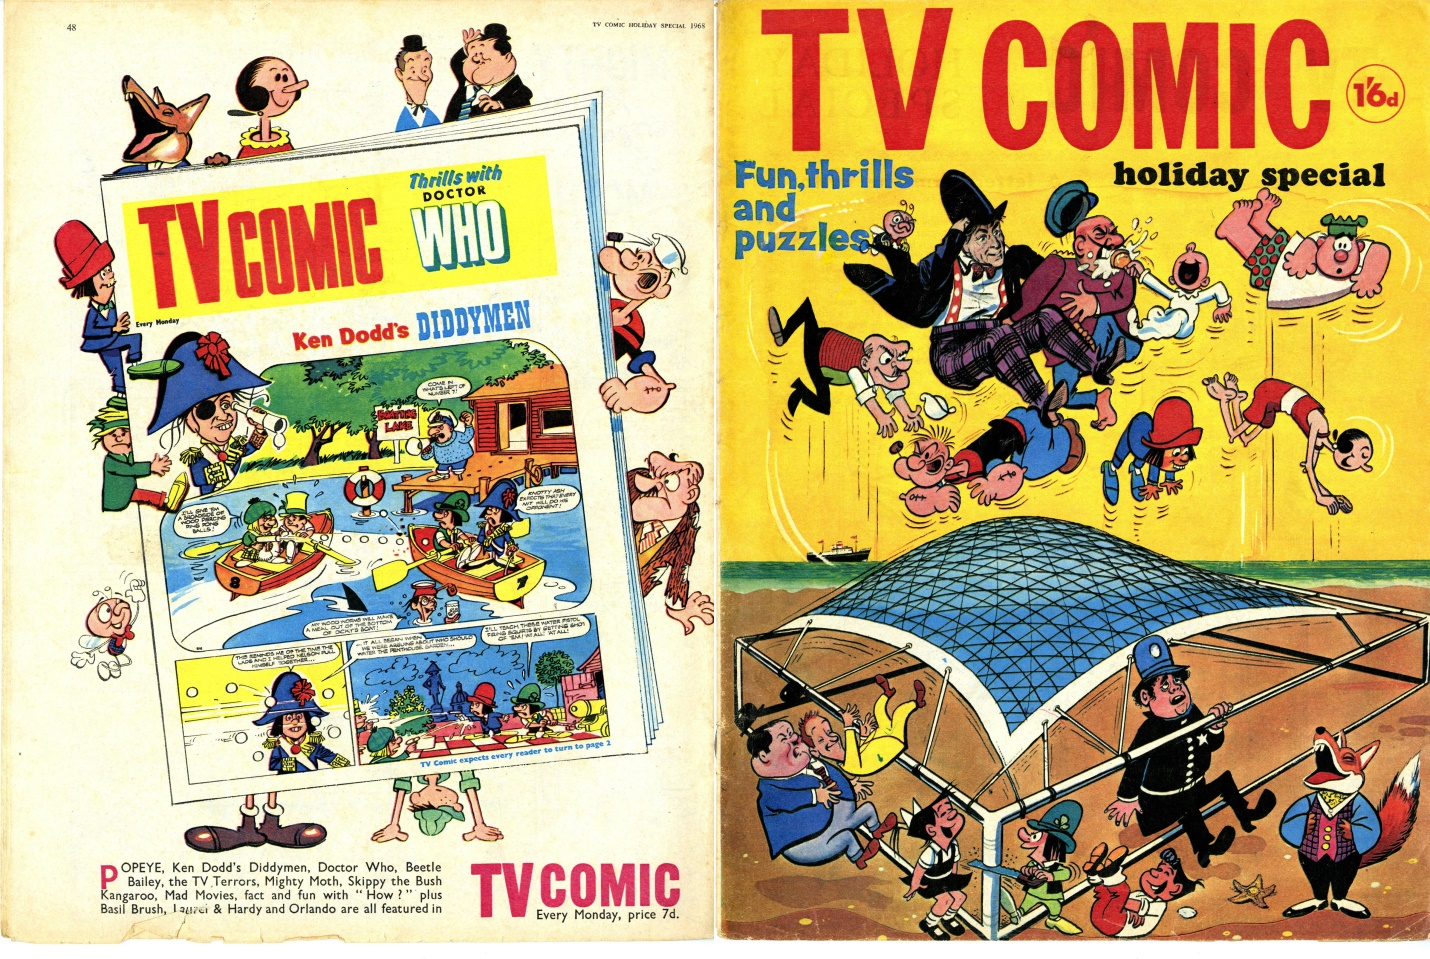 TV Comic Holiday Special, 1968